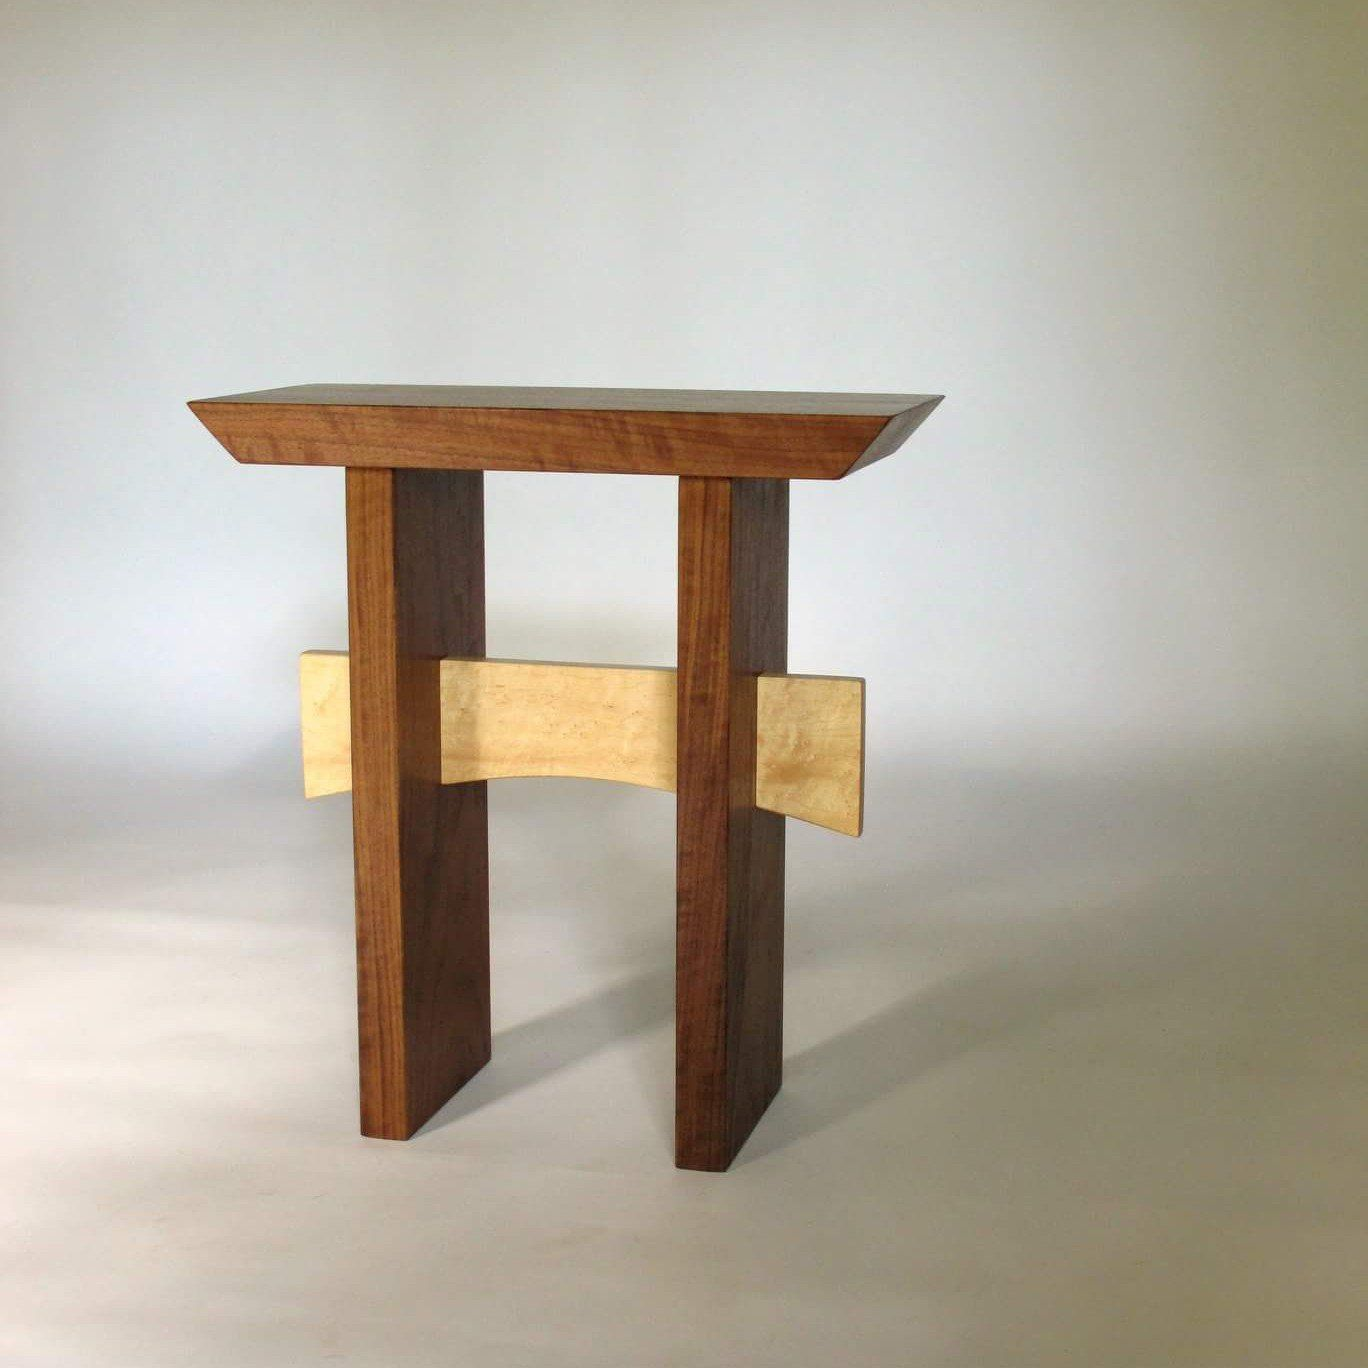 From Our Statement Collection This Small Narrow Furniture Piece